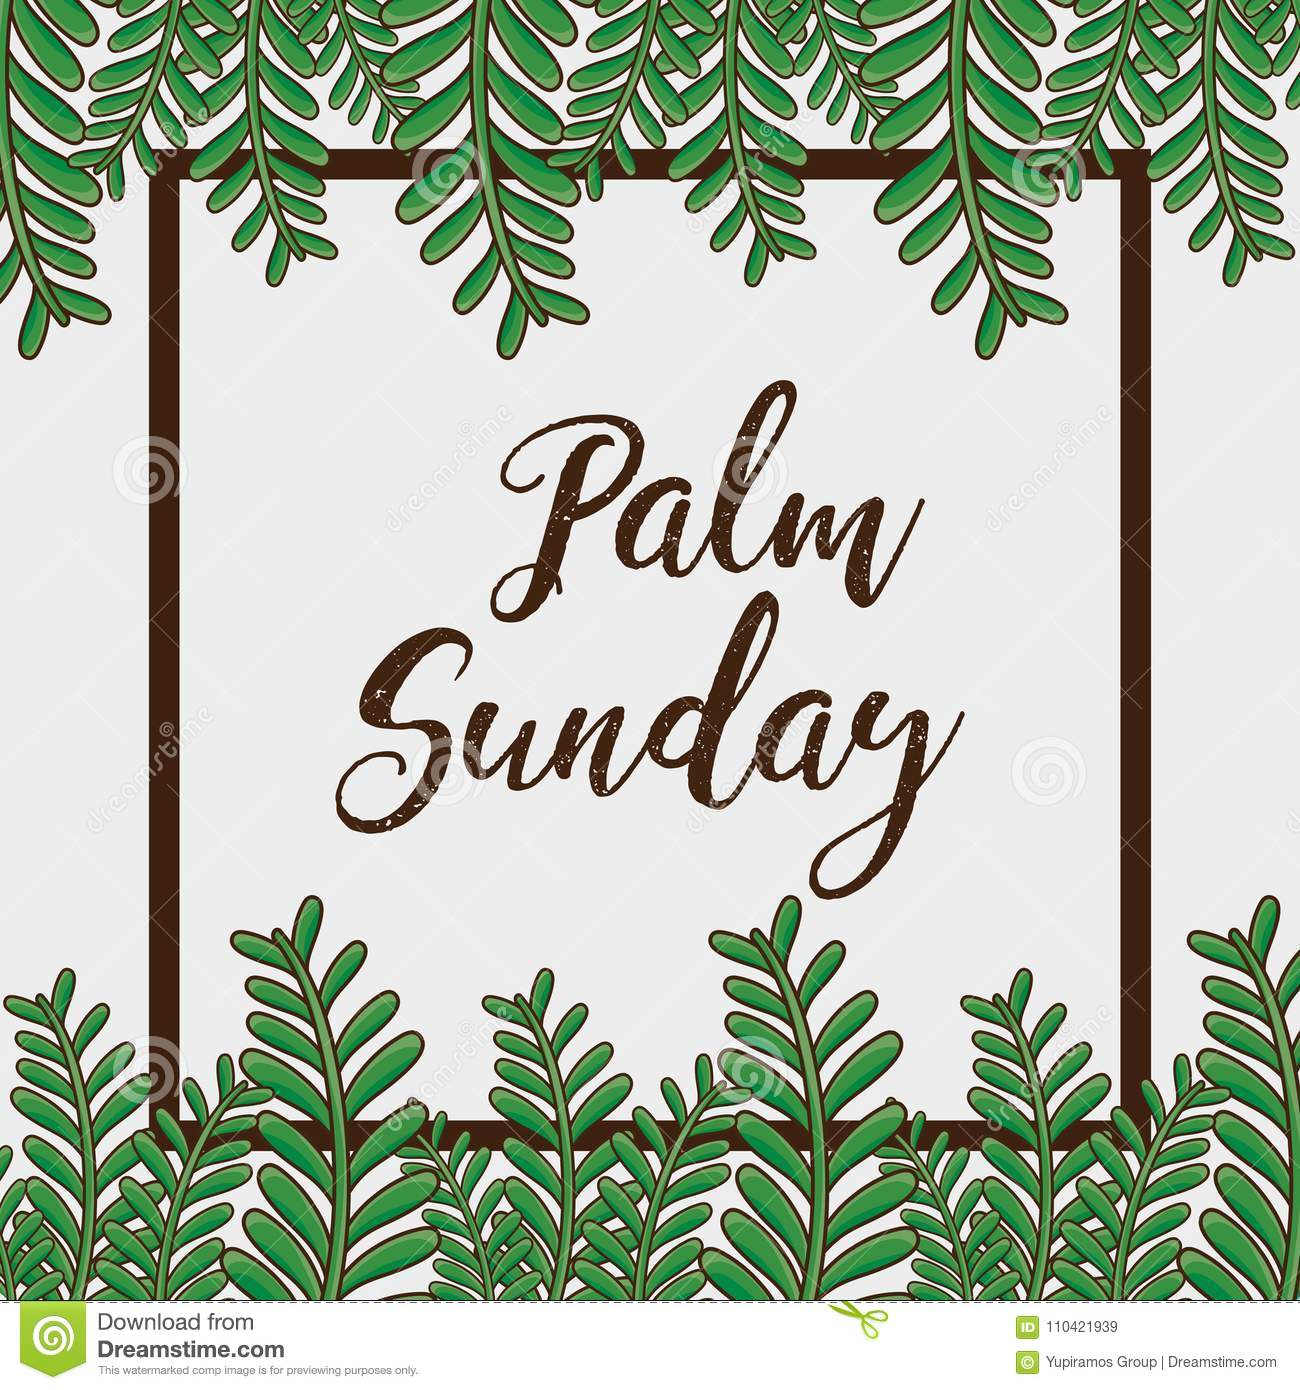 Sunday palm branches religion background